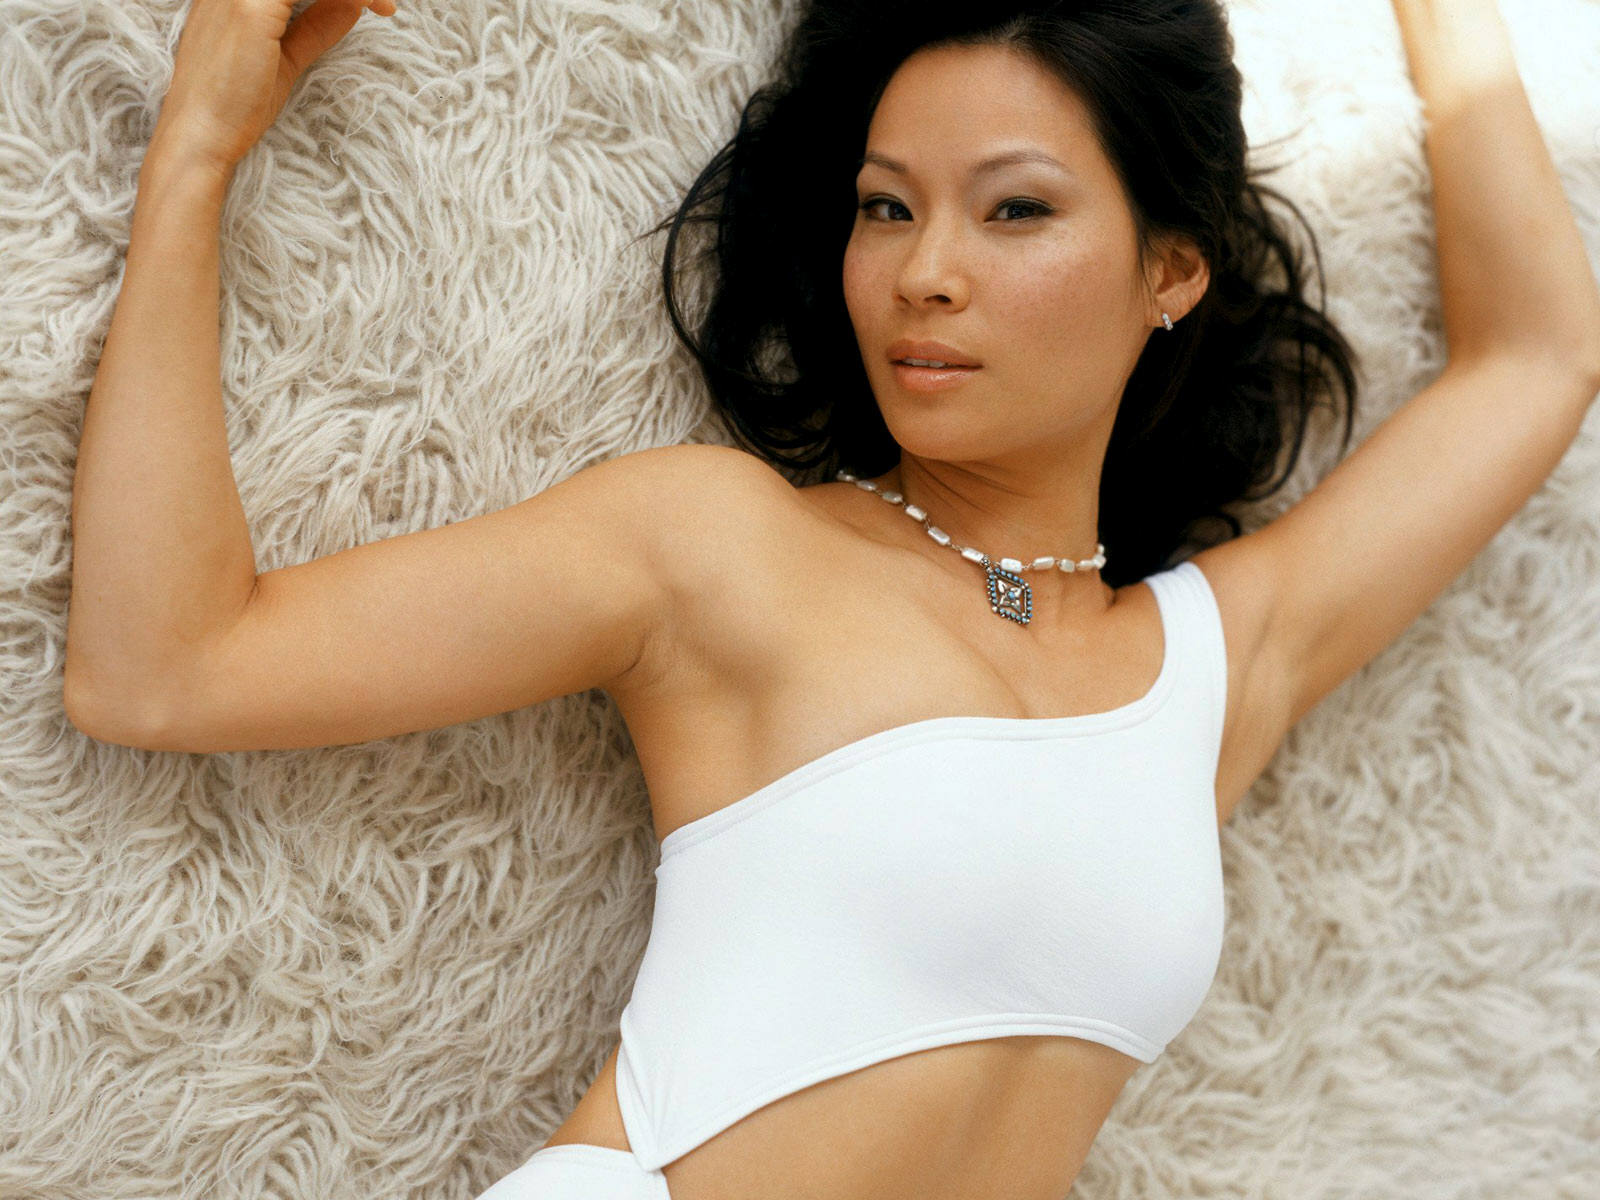 Lucy Liu Wallpaper Images, High Resolution Desktop Wallpapers (36 ...